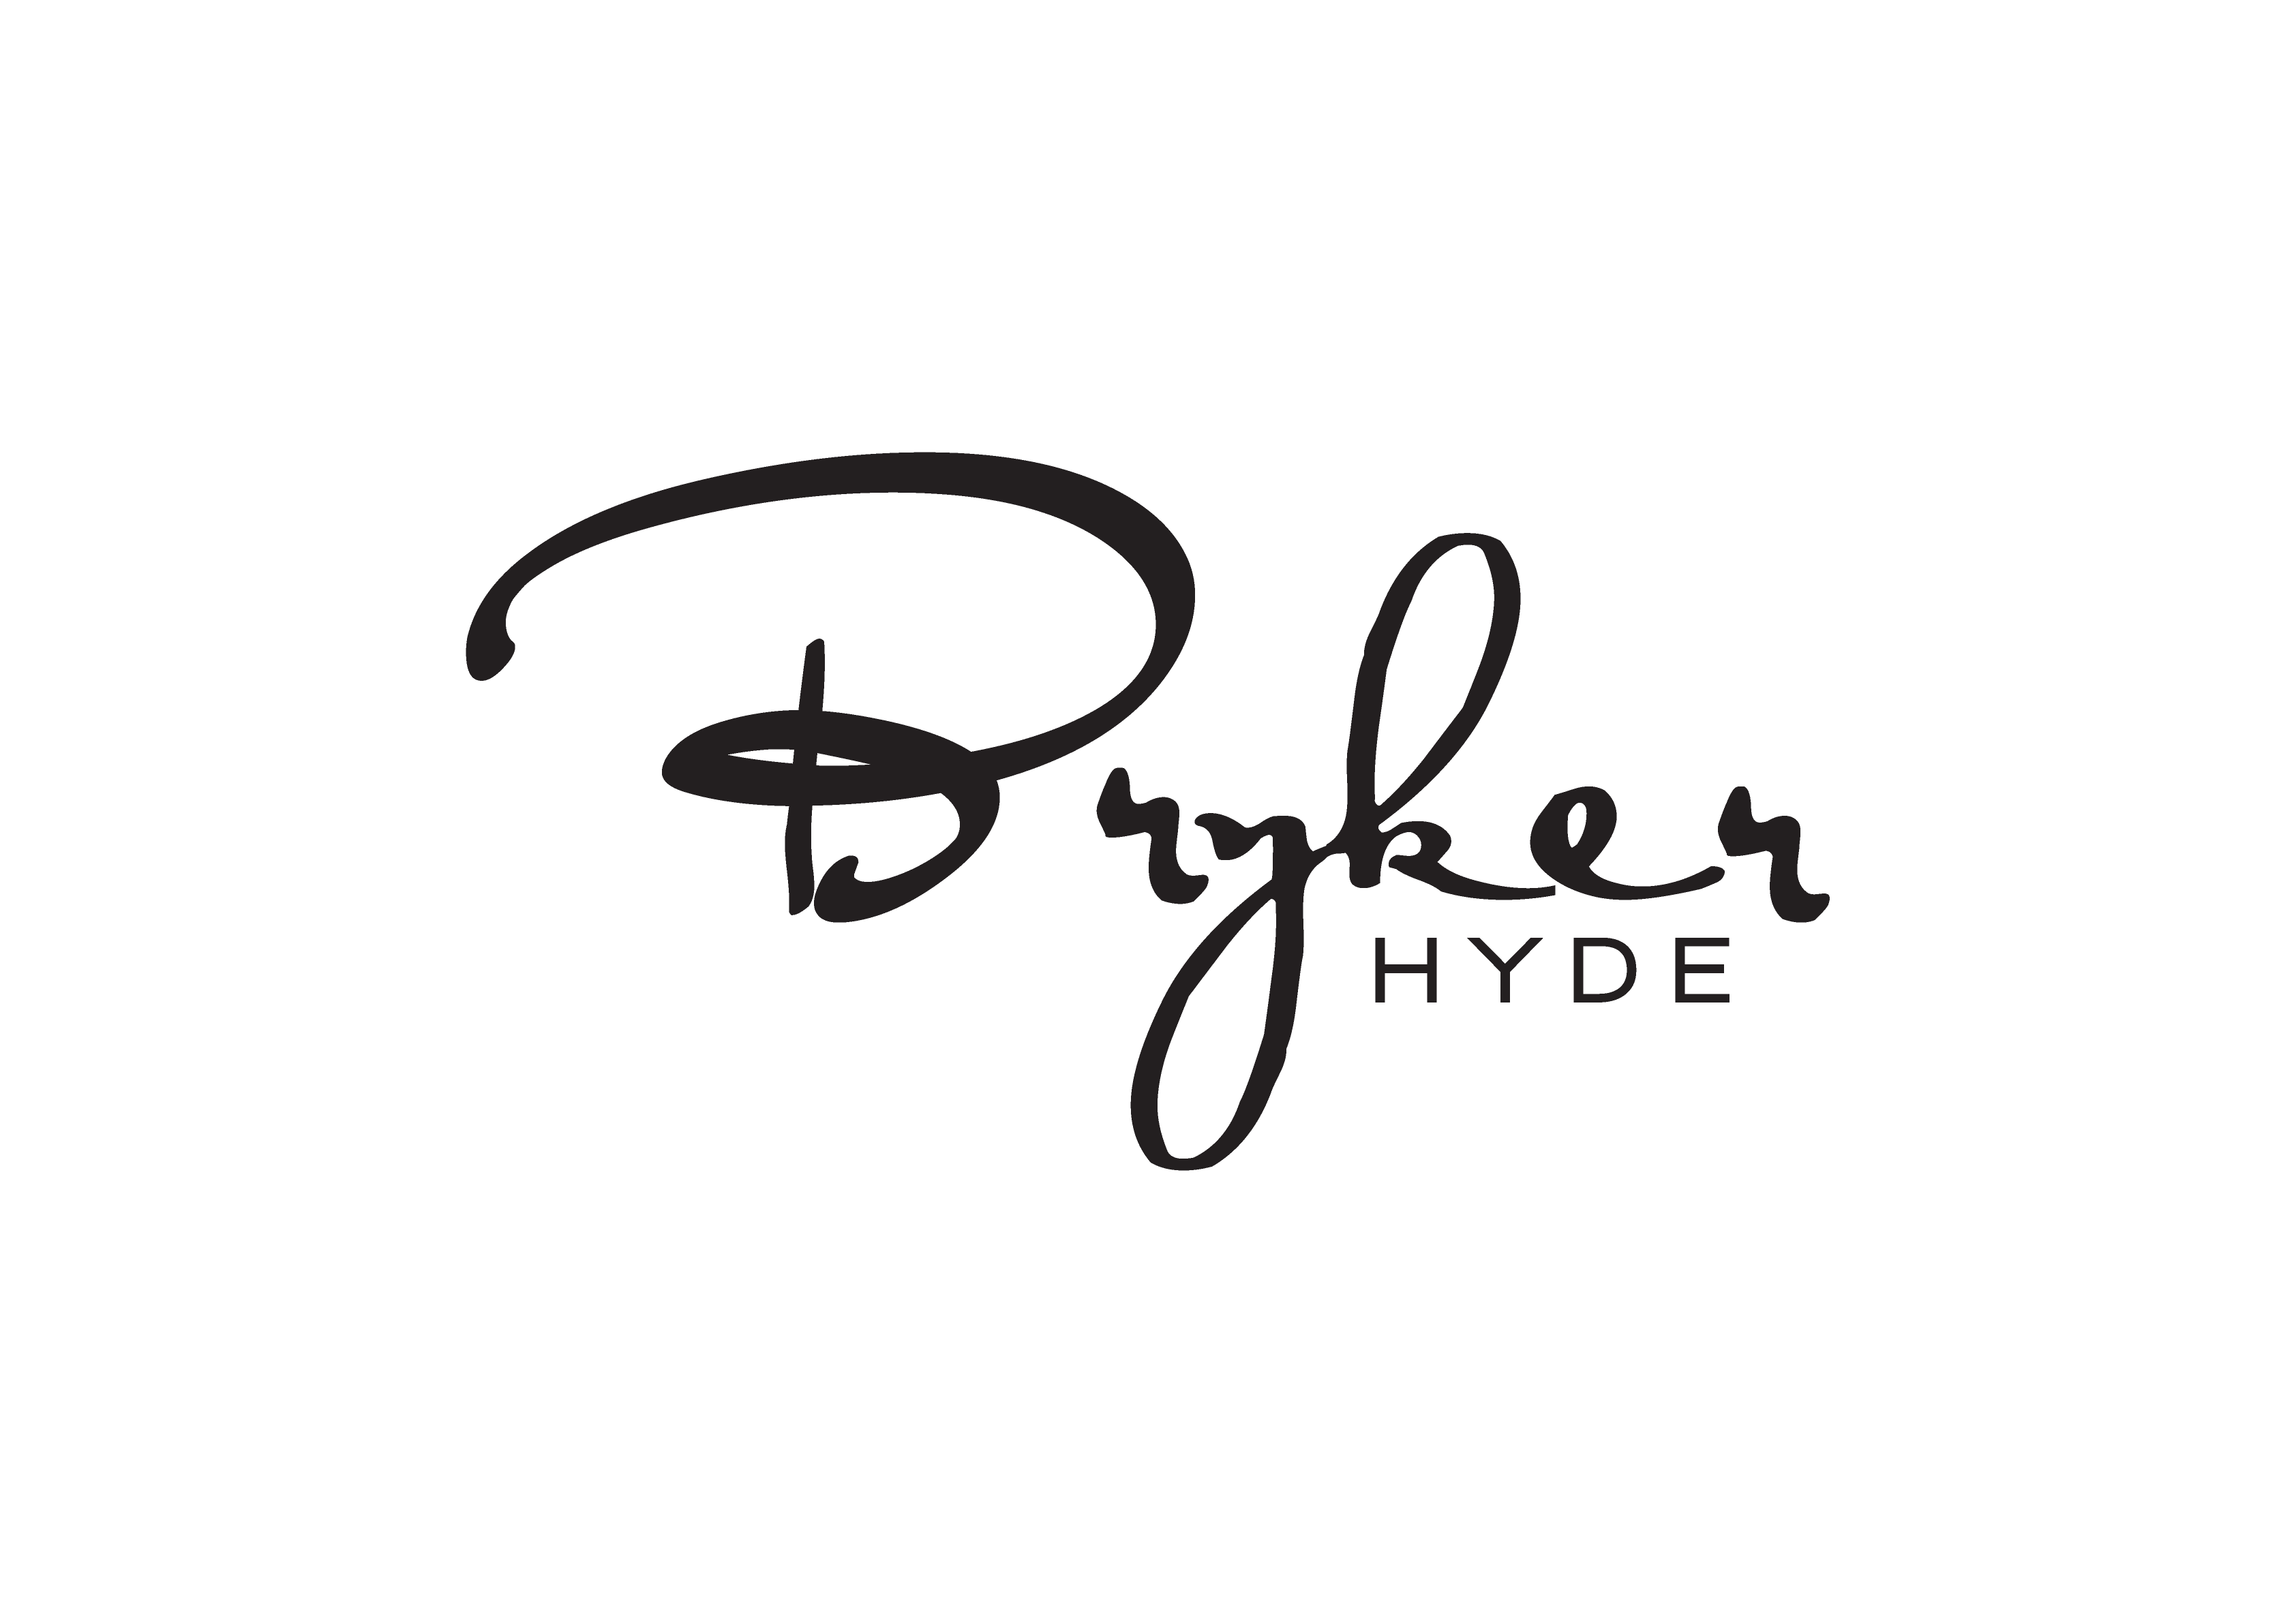 Bryker Hyde Digital marketing Client